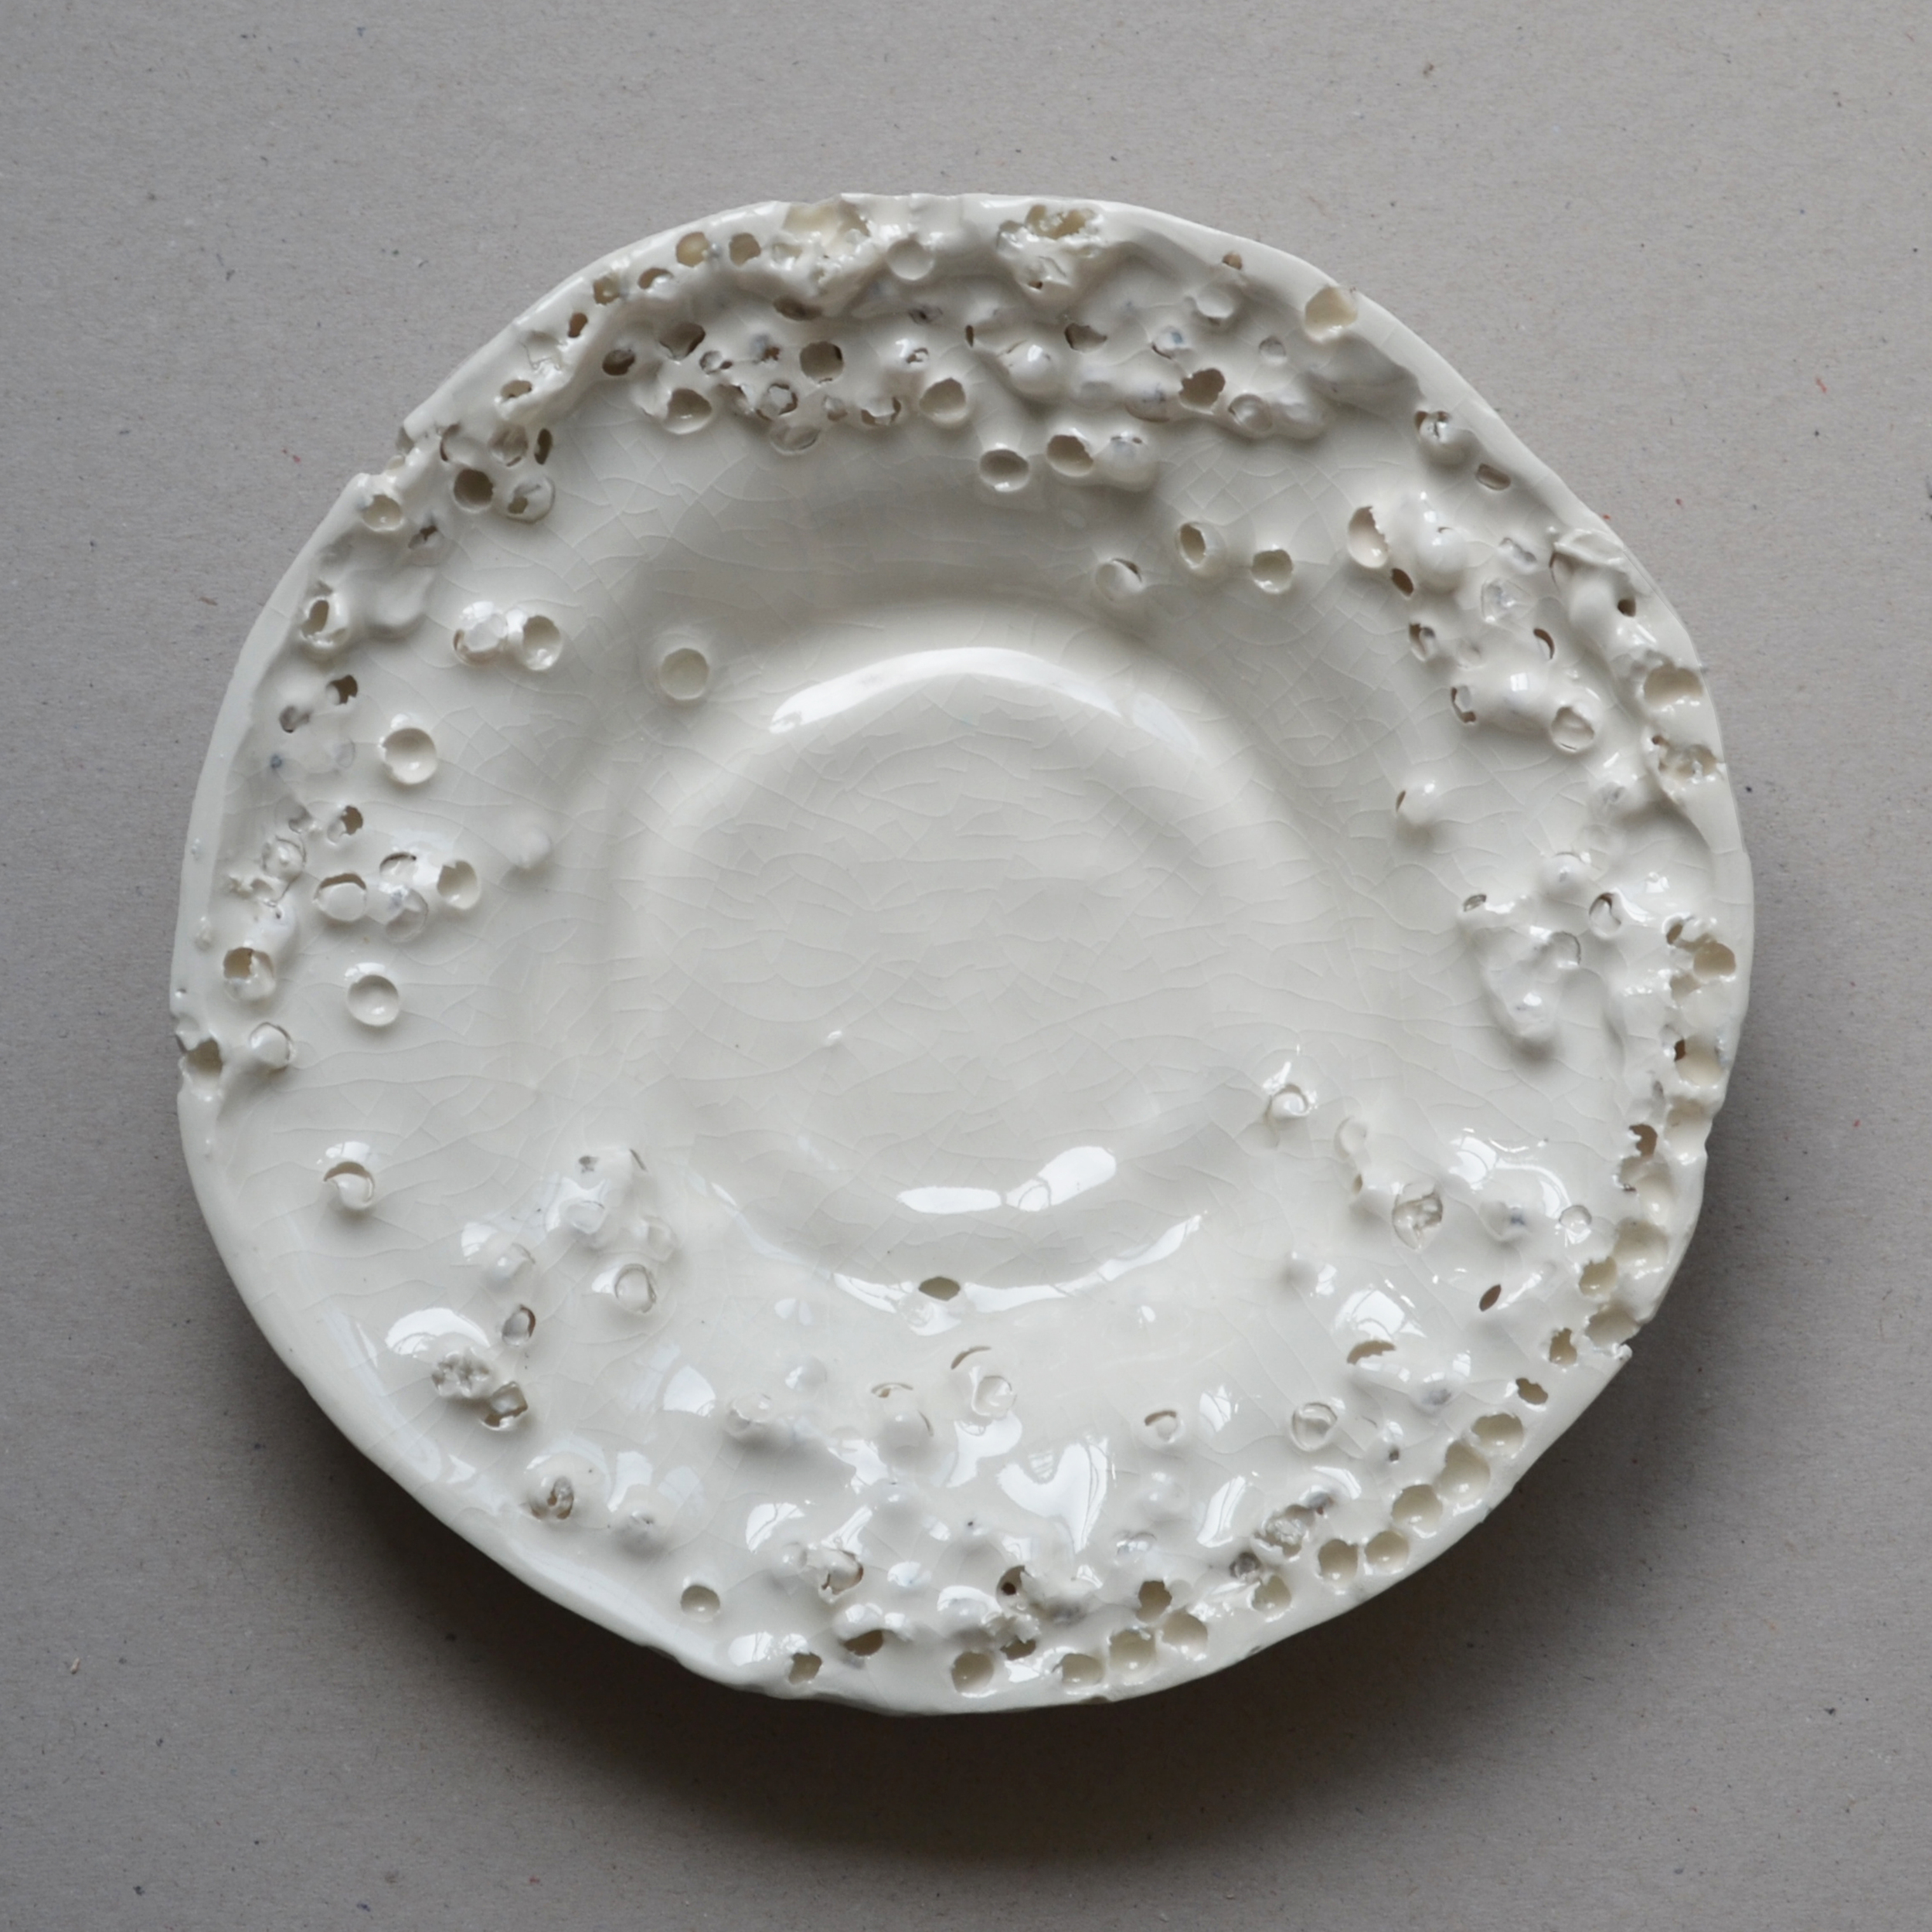 Daniel van Dijck - Fragility of Things bowl